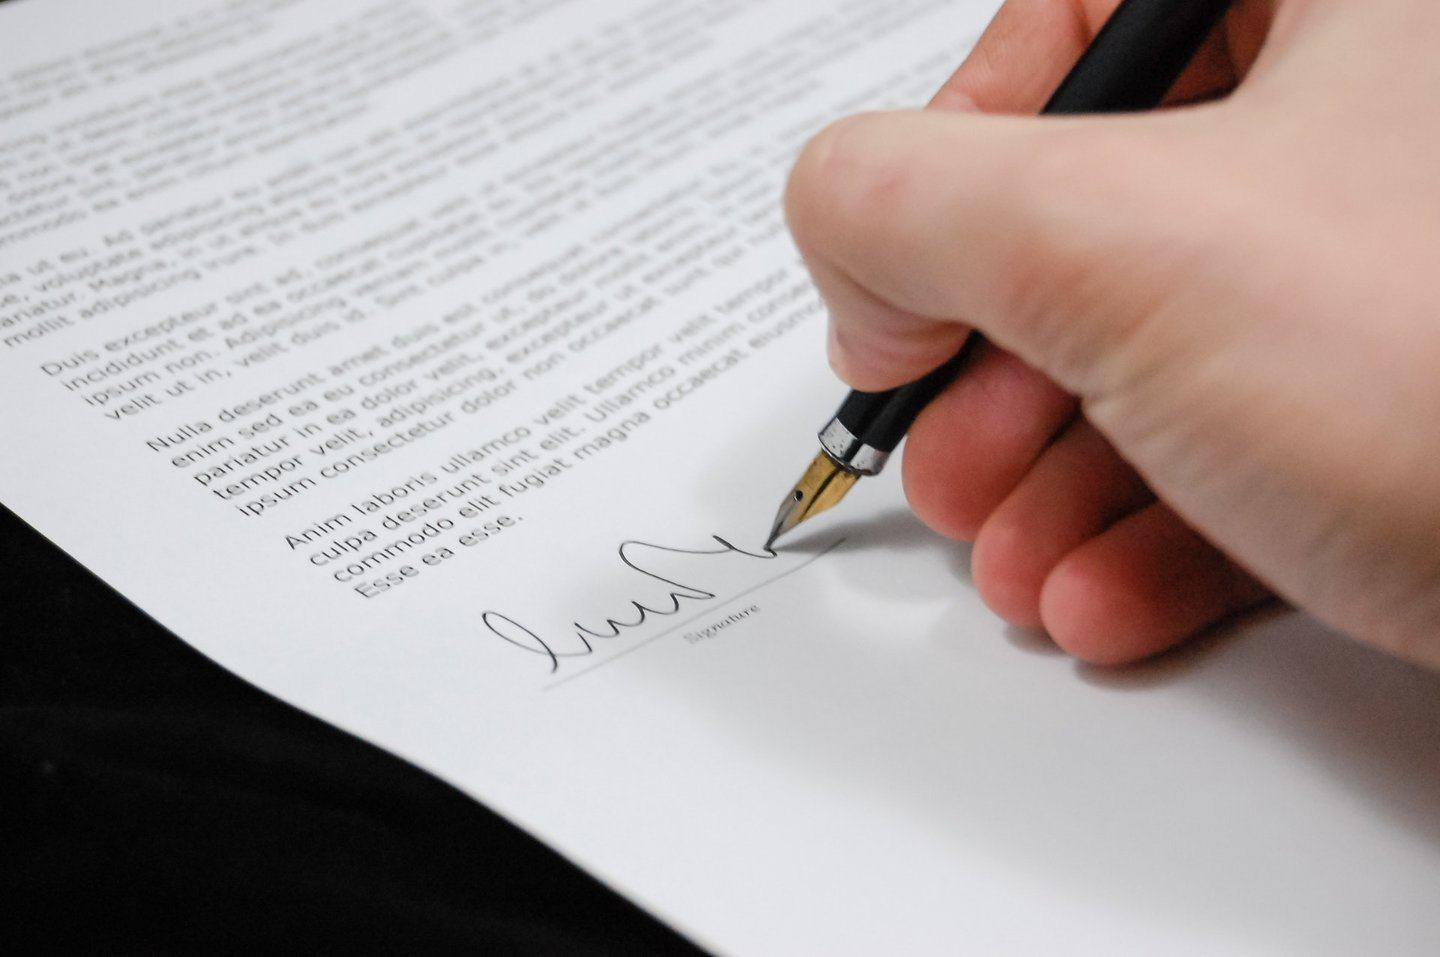 Person signing legal document